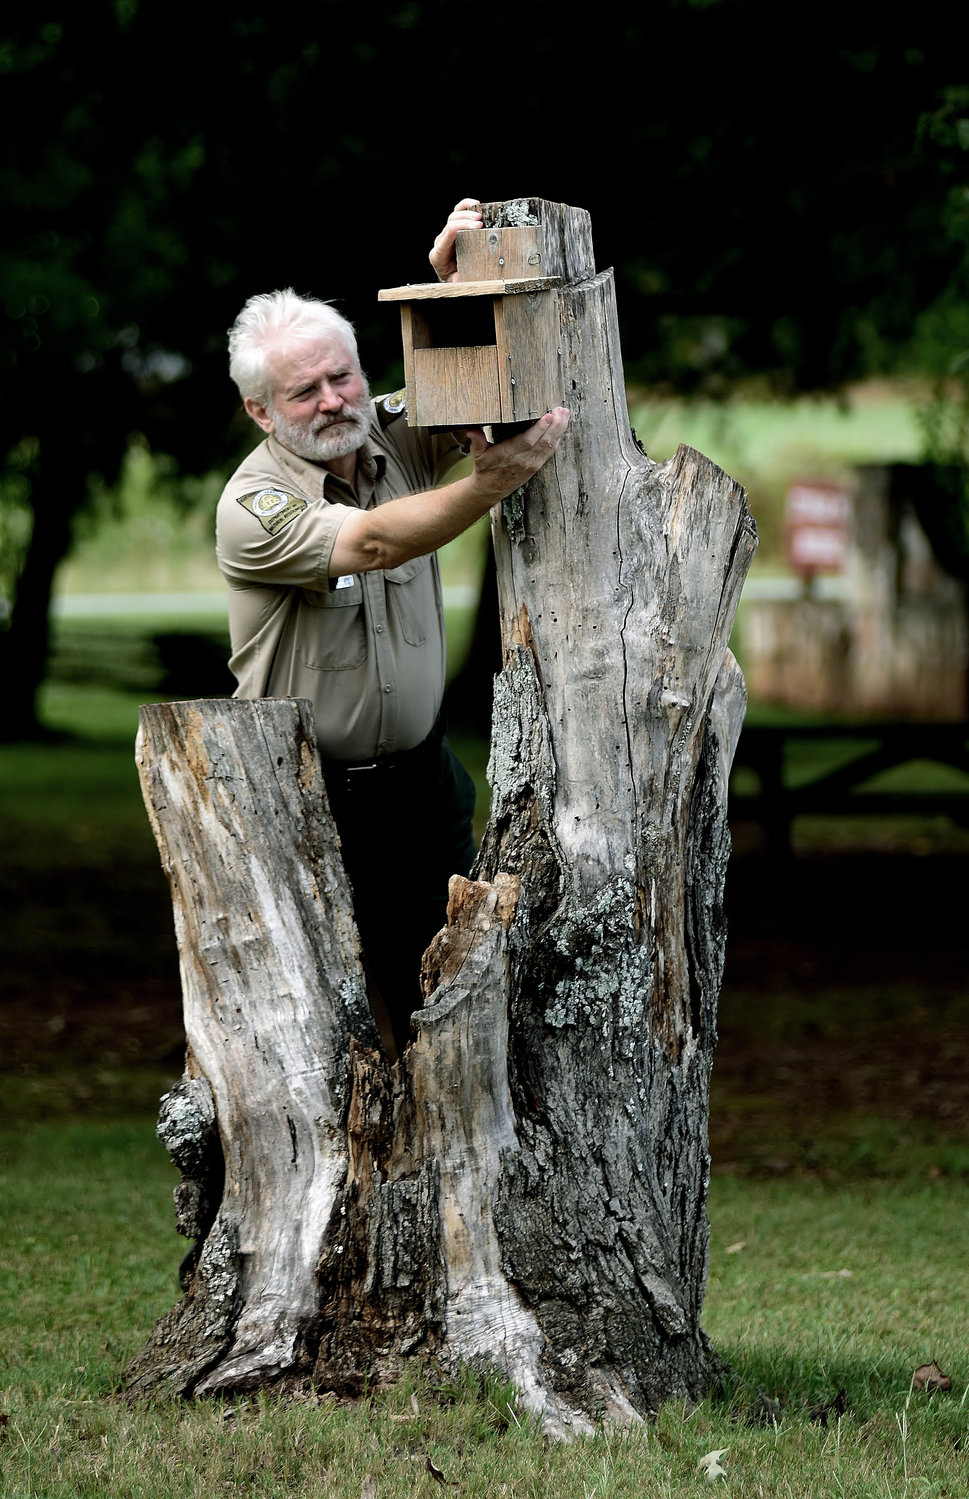 Georgia Department of Natural Resources Site Manager Steve Hadley checks one of the many birdhouses at the Etowah Indian Mounds State Historic Site. The public will have the opportunity to build birdhouses and picnic tables at the venue Saturday on Your State Parks Day.